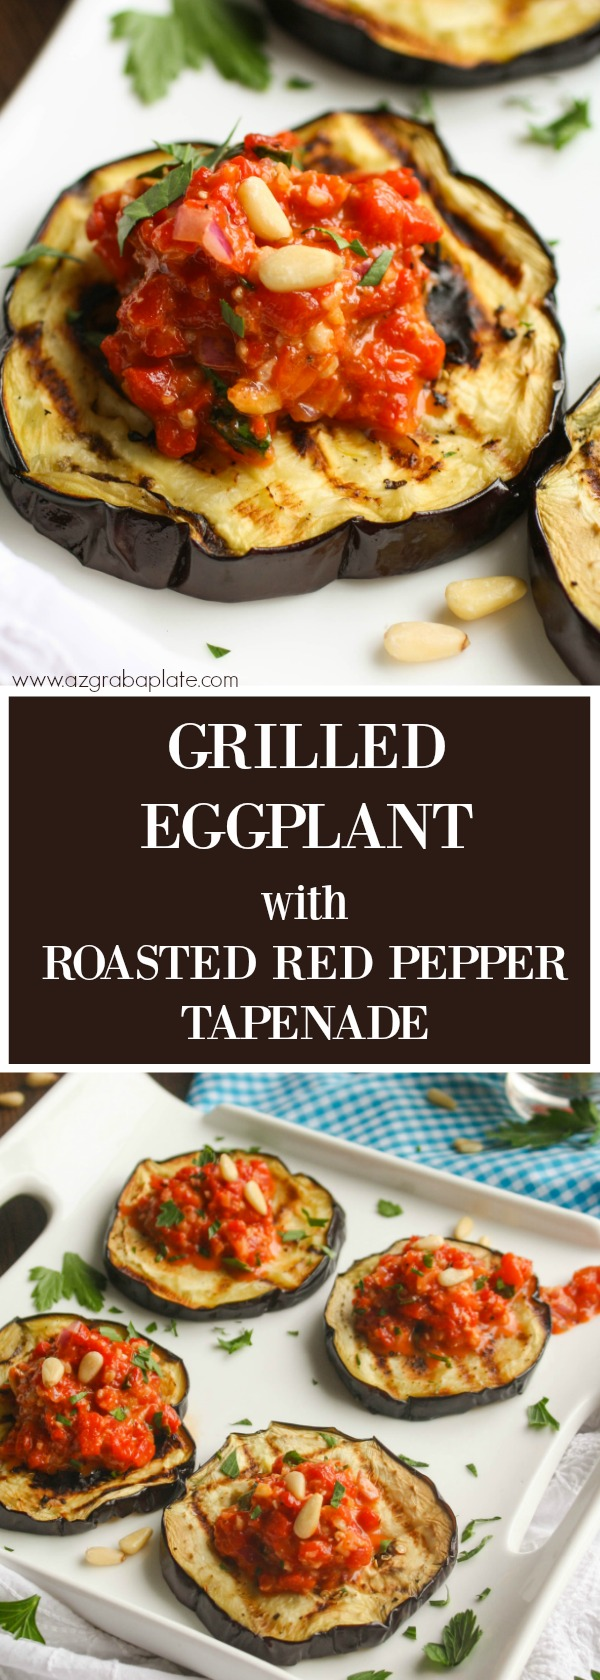 Grilled Eggplant with Roasted Red Pepper Tapenade is a treat for the summer! This is a tasty and easy-to-make dish!